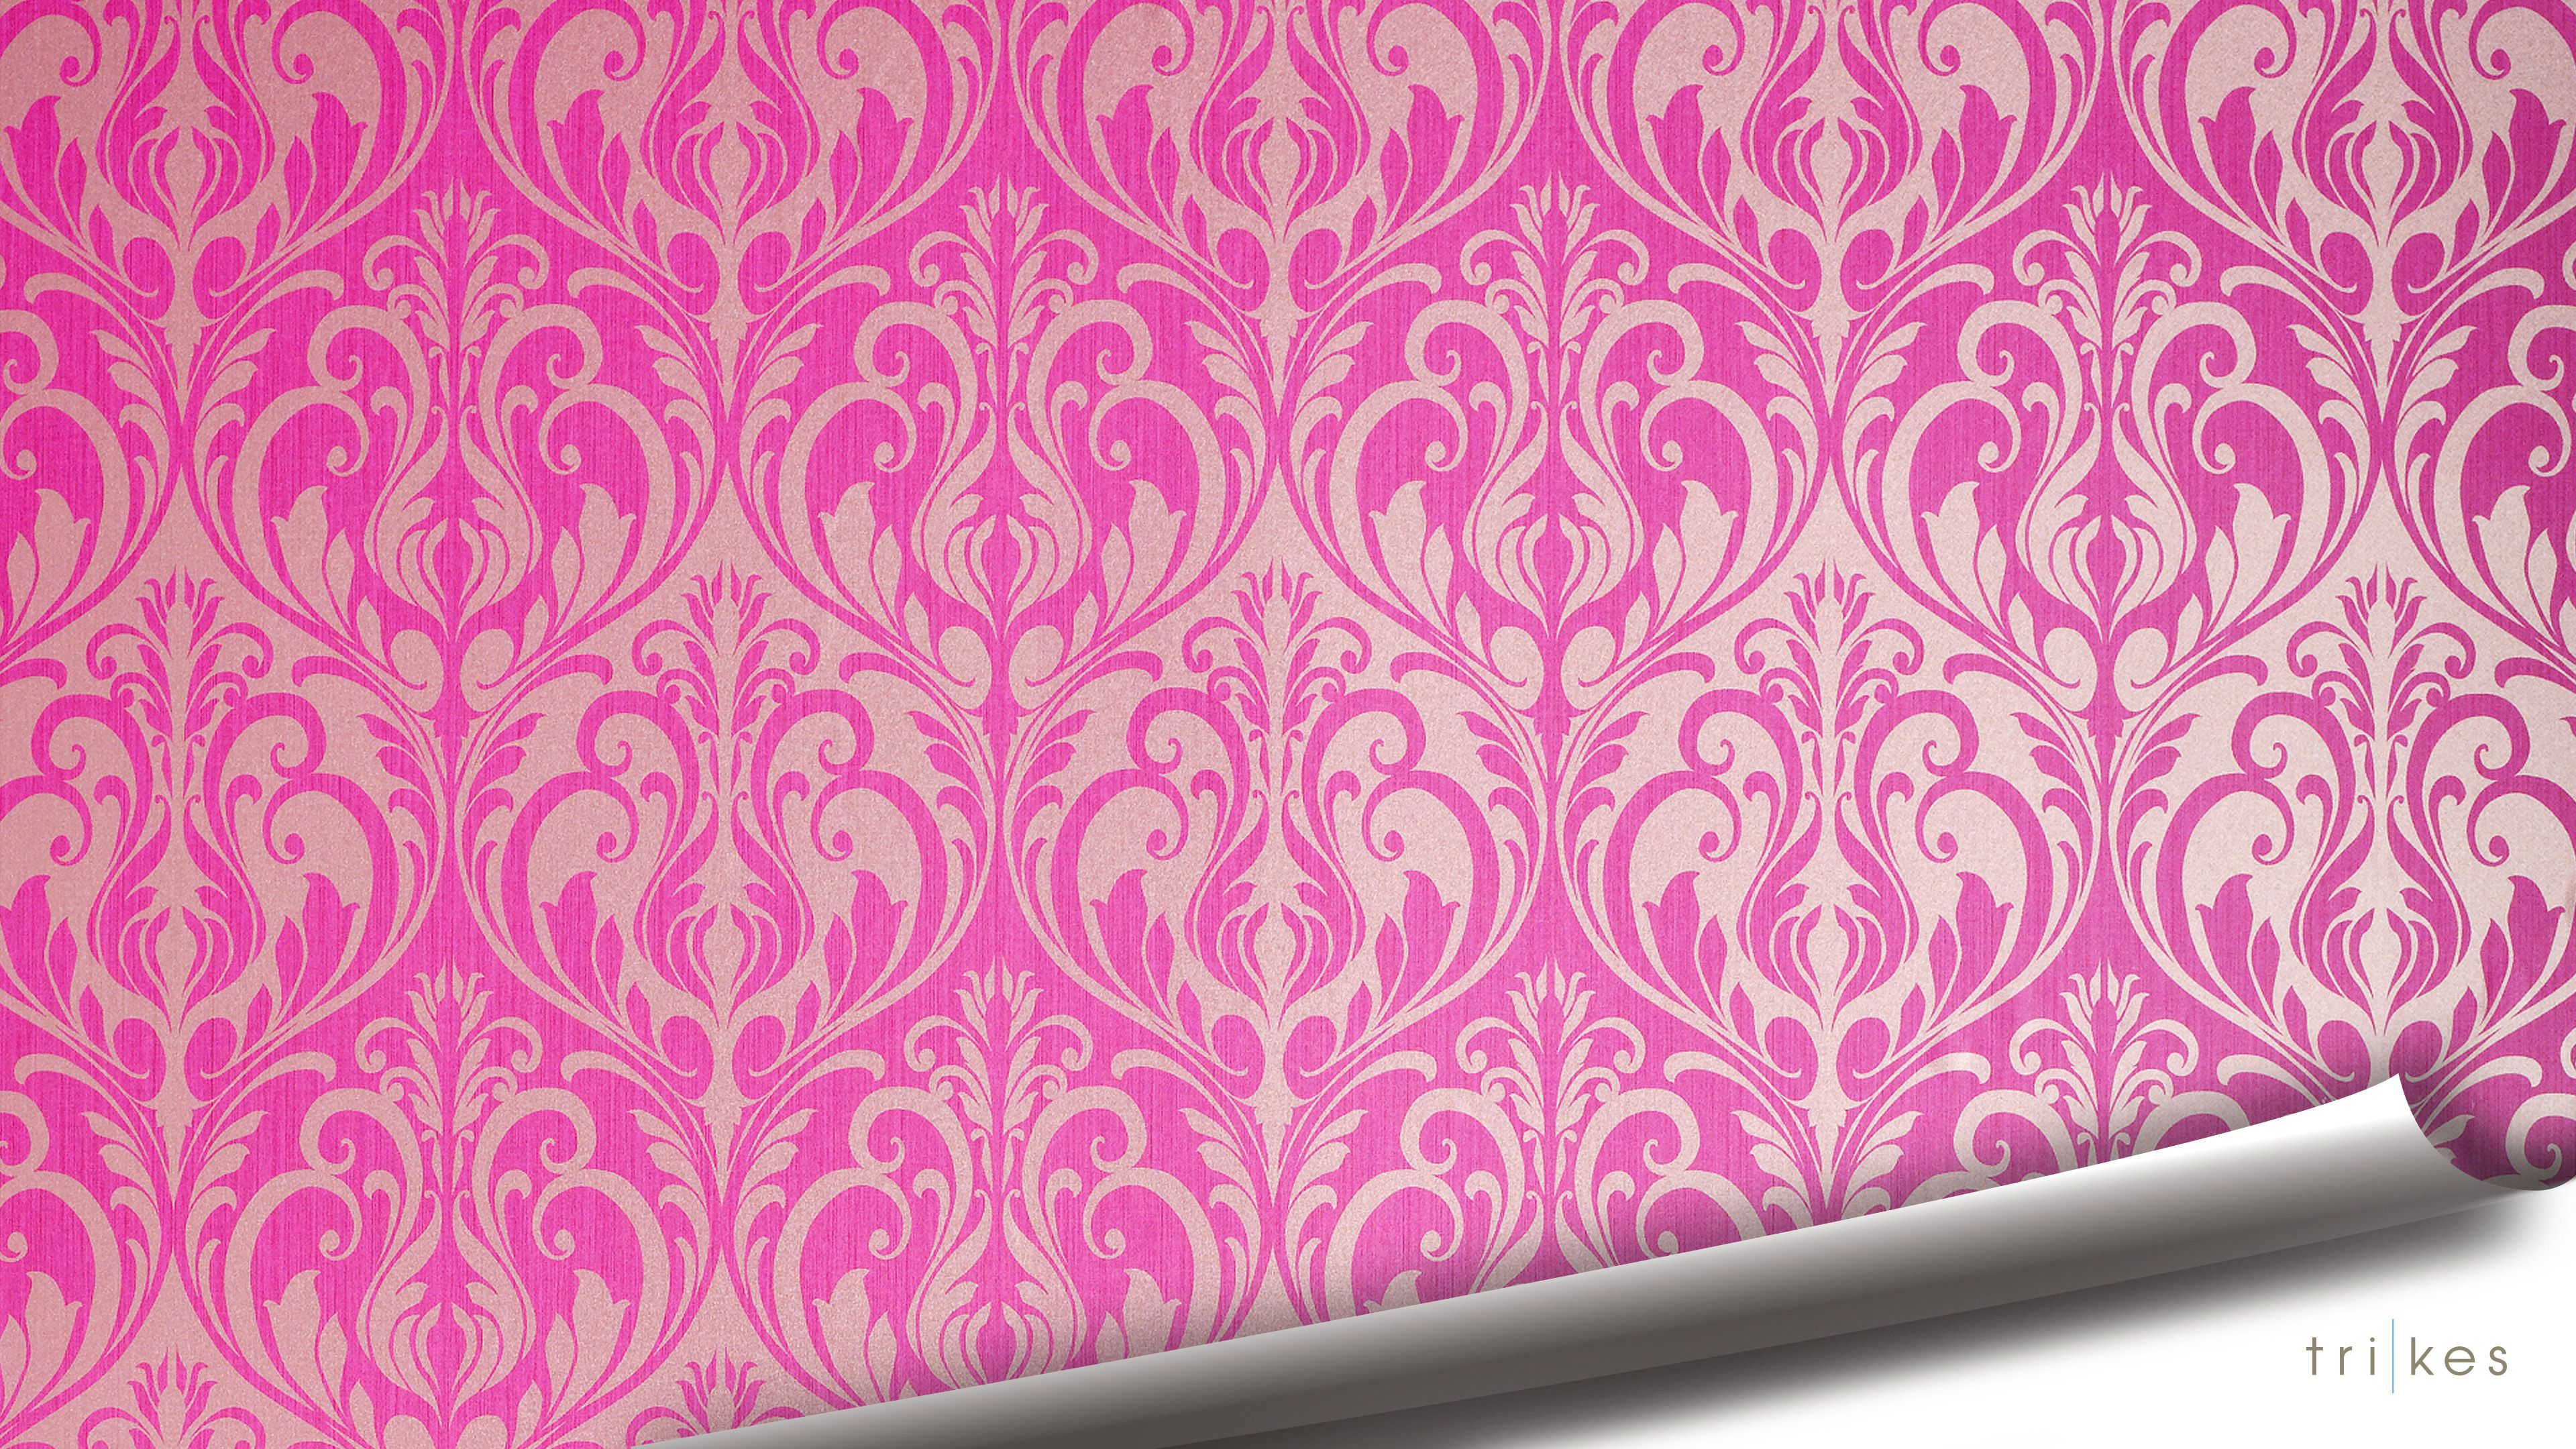 Download and use 100000+ pink background stock photos for free. 57 Best Free Aesthetic Pink Desktop Wallpapers ...